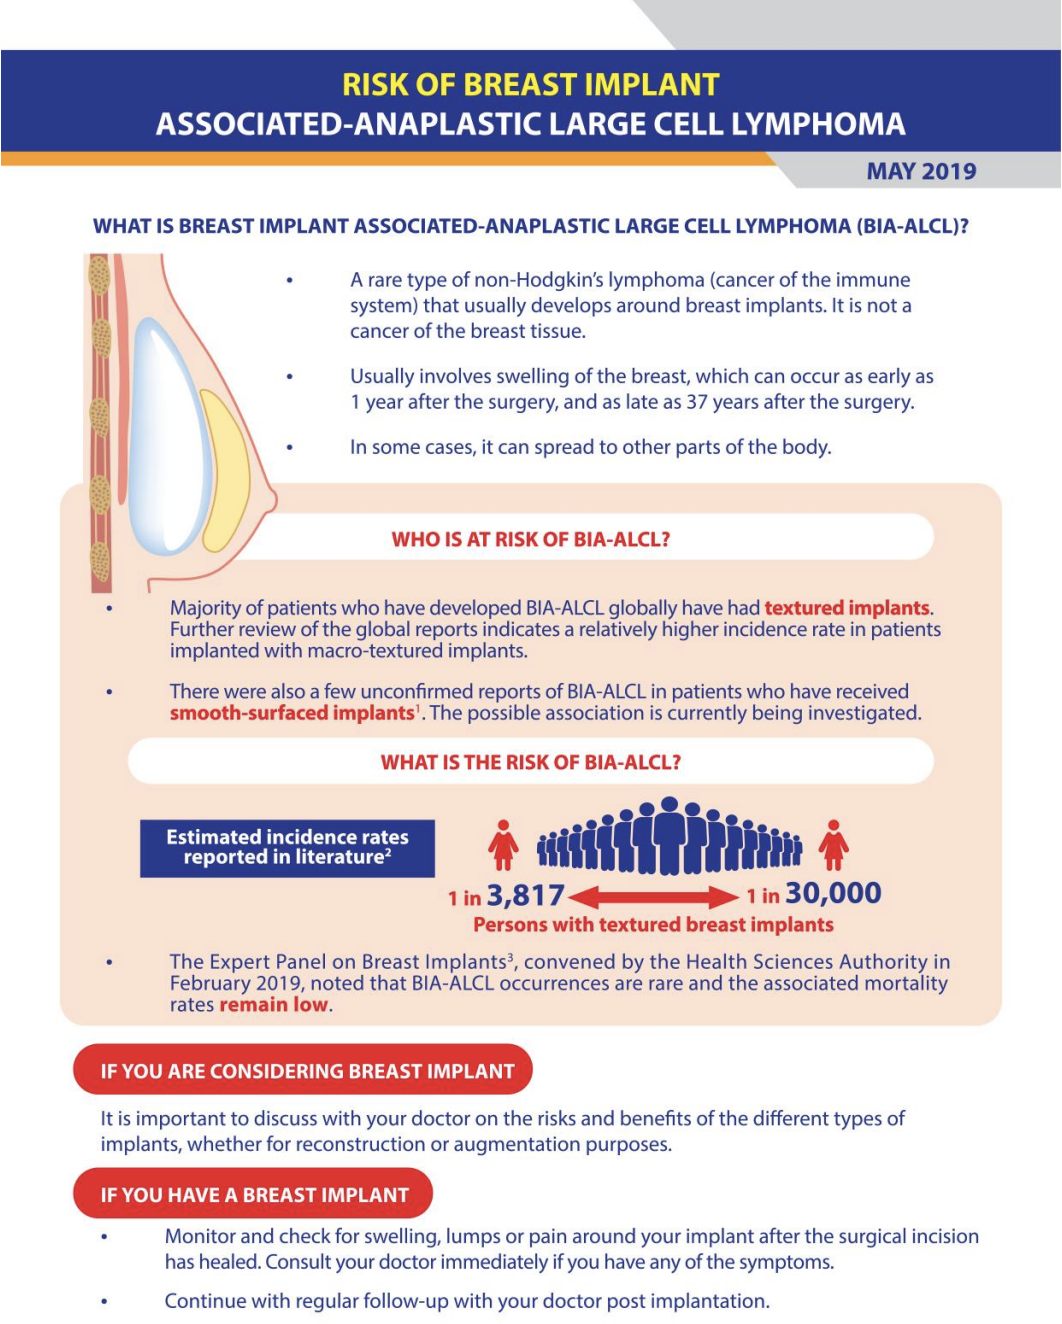 Infographic by HSA on Breast Implant Associated-Anaplastic Large Cell Lymphoma (BIA-ALCL)